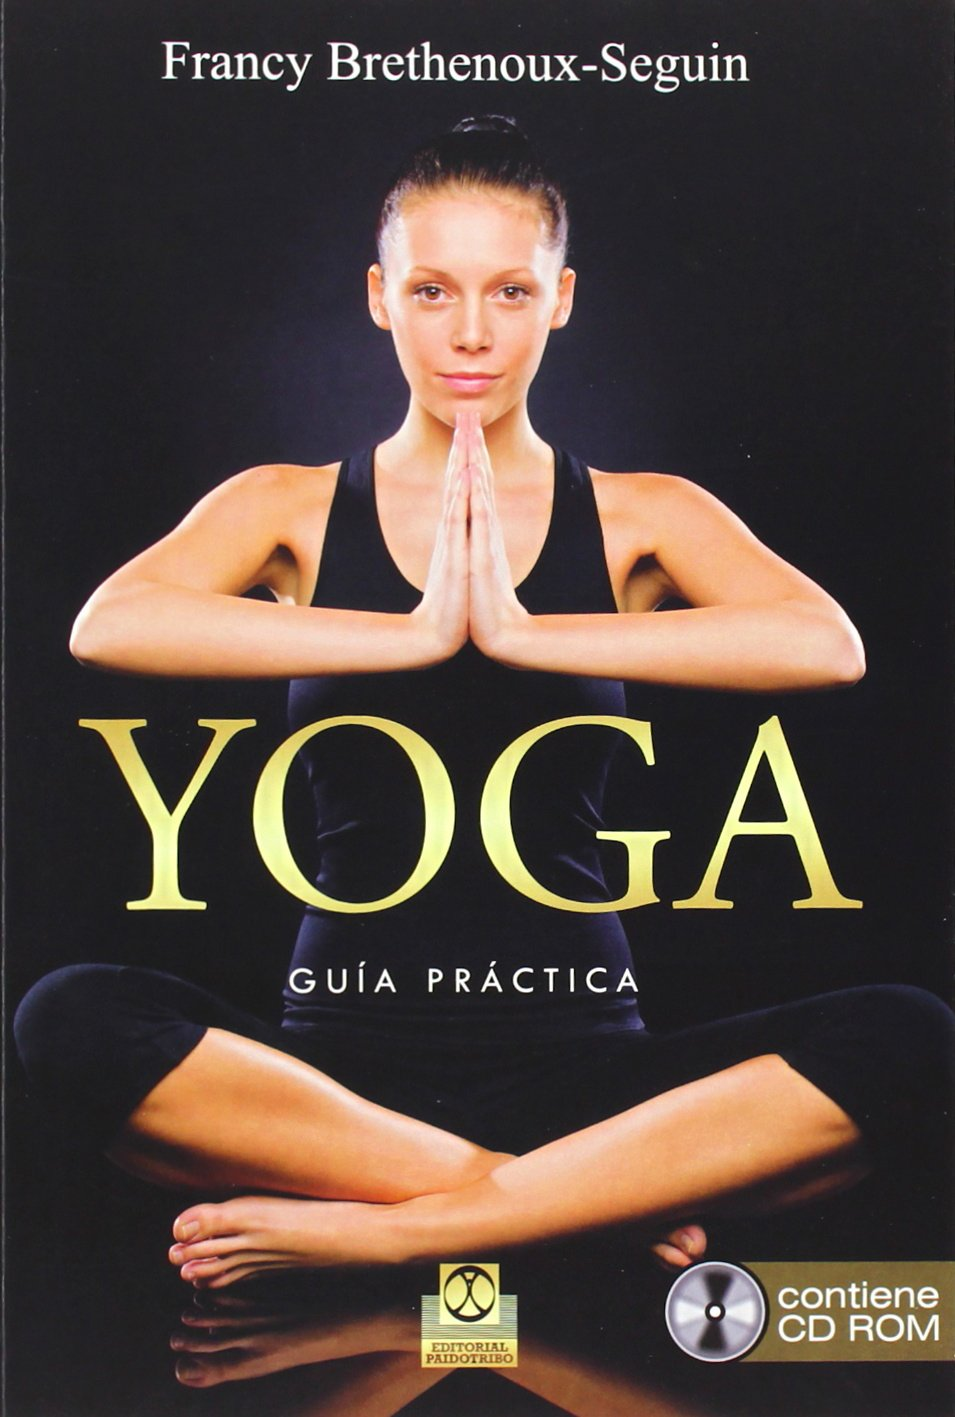 Yoga. Guía Práctica (Libro + CD Rom): Amazon.es: Francy ...